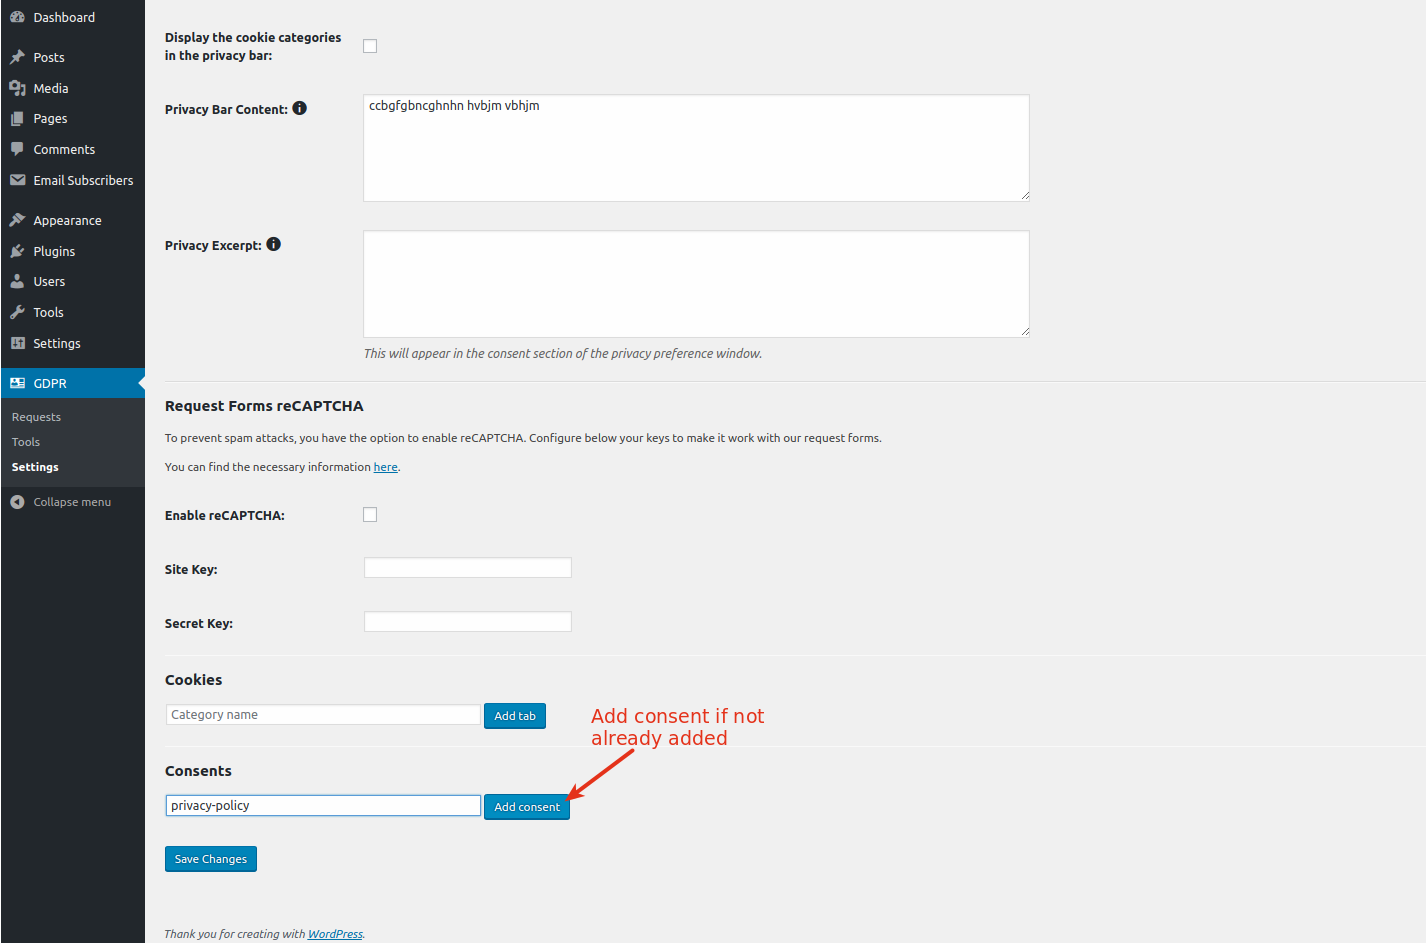 Consent Checkbox in the subscription form